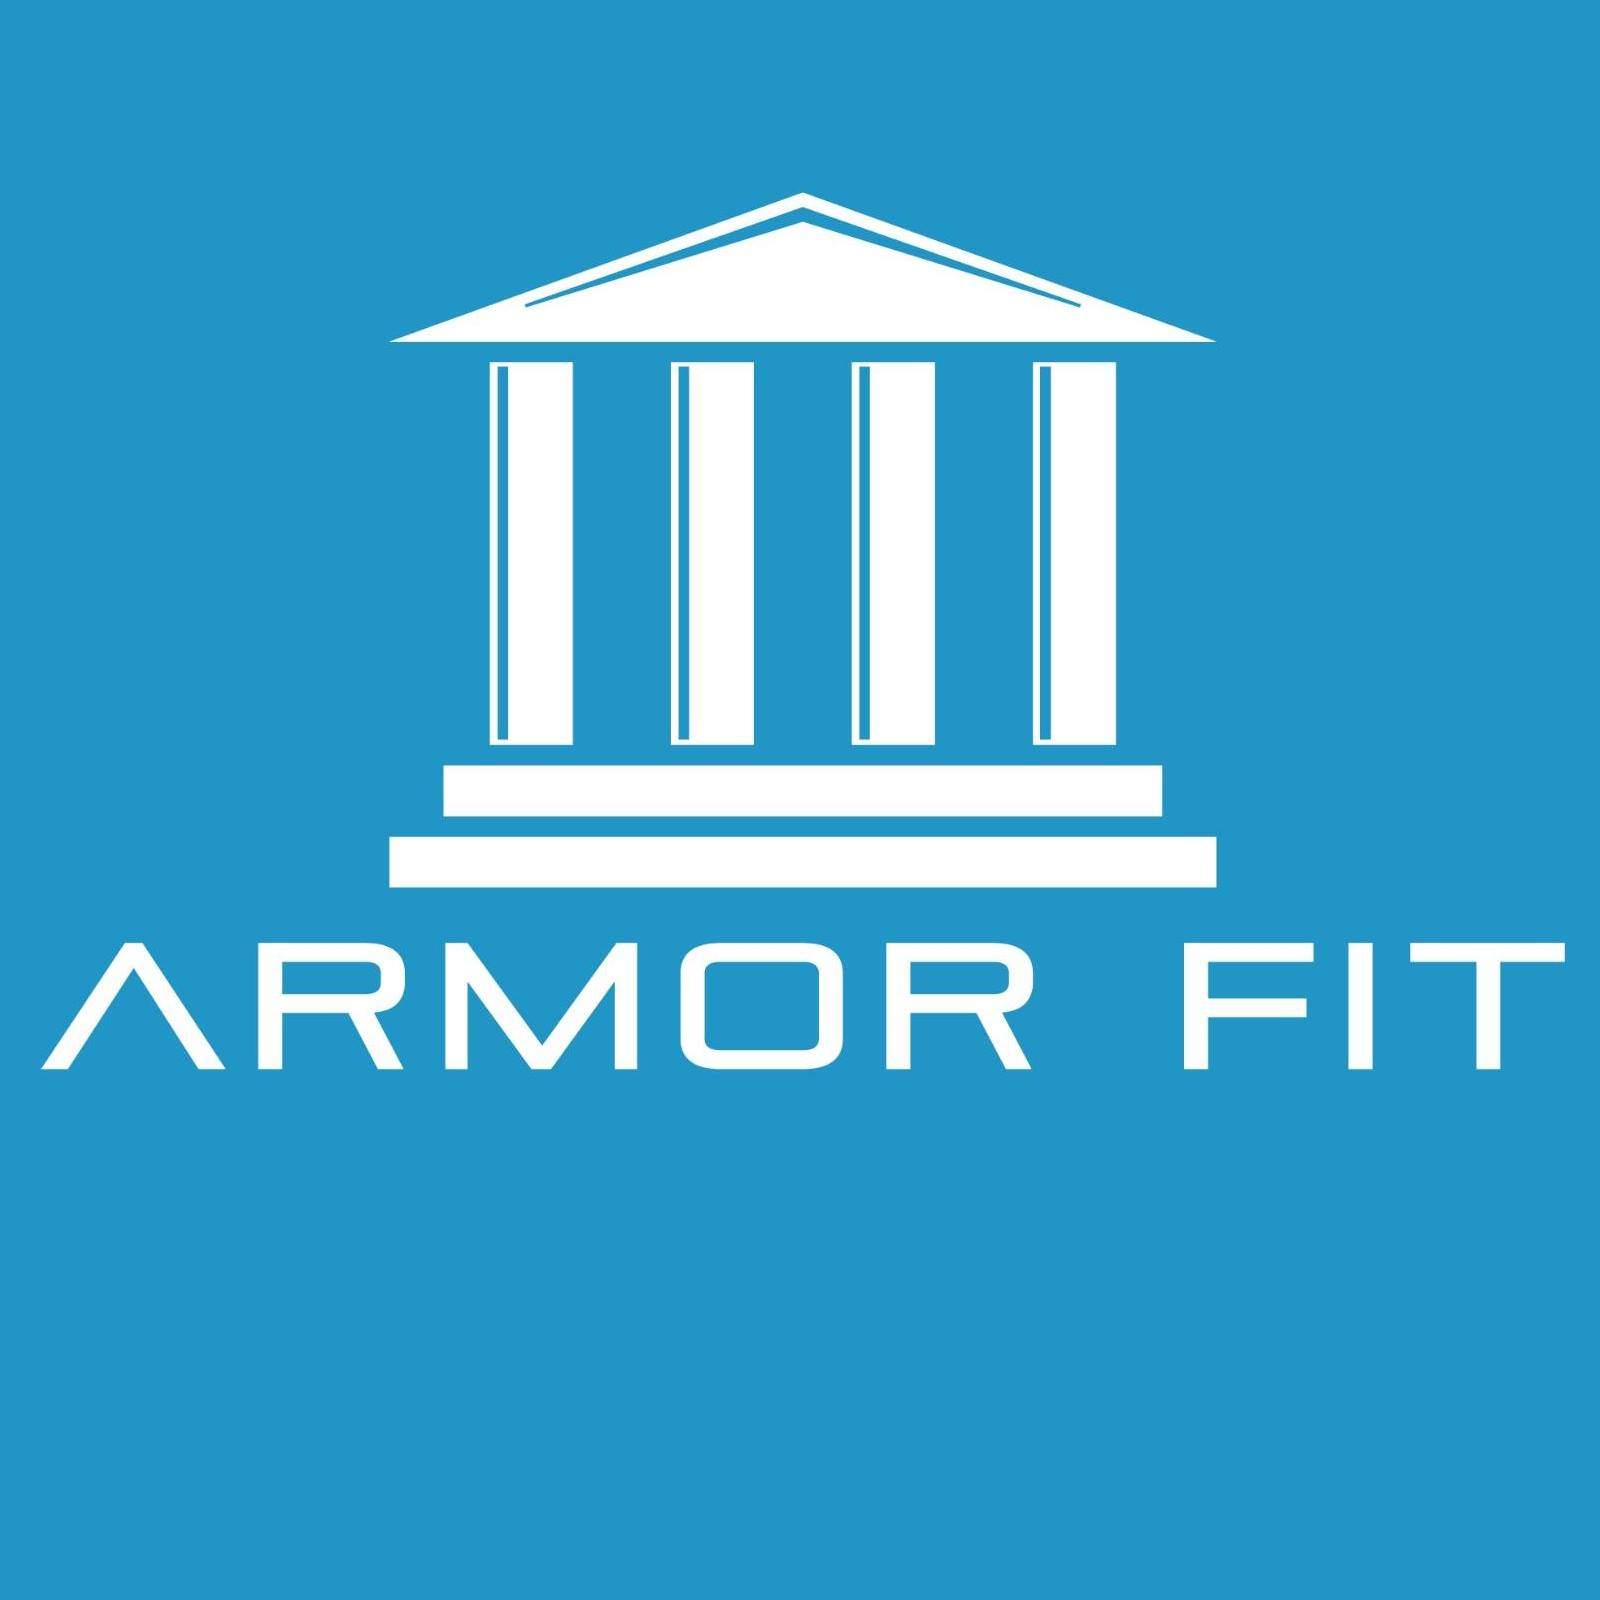 Armor Fit